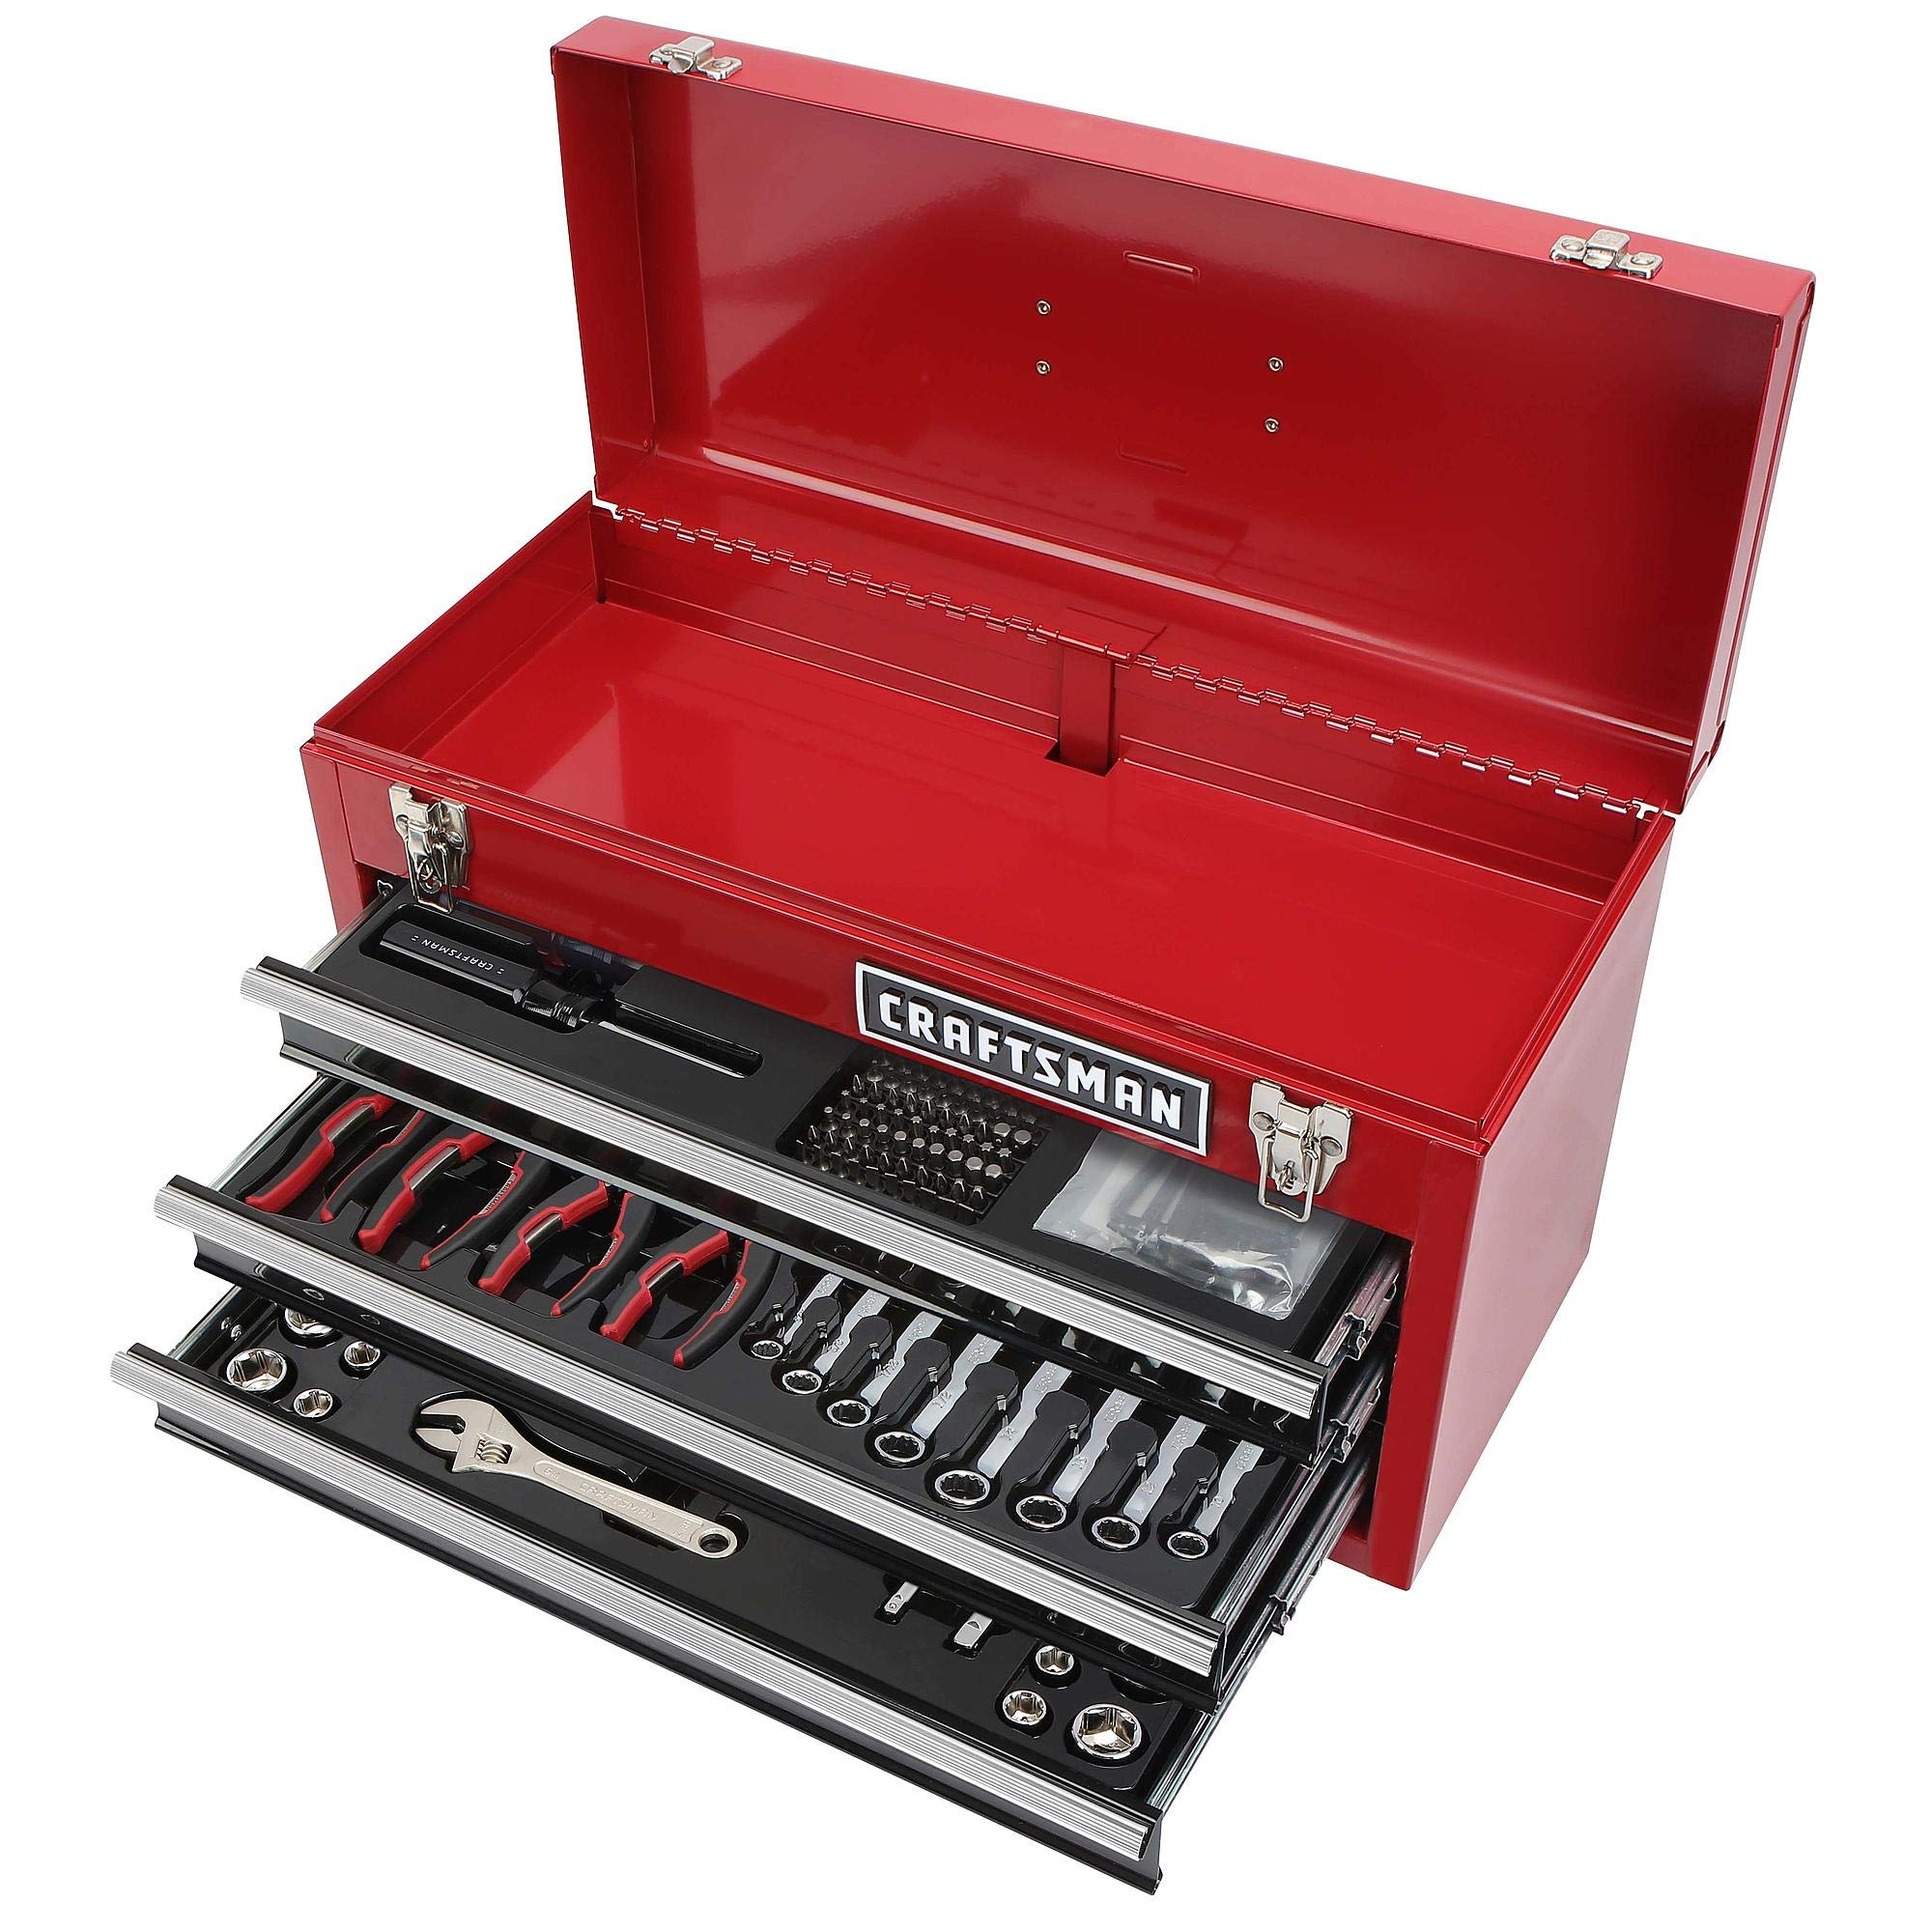 CRAFTSMAN 178 TOOL SET WITH CRAFTSMAN 3 DRAWER TOOL BOX by Craftsman (Image #1)